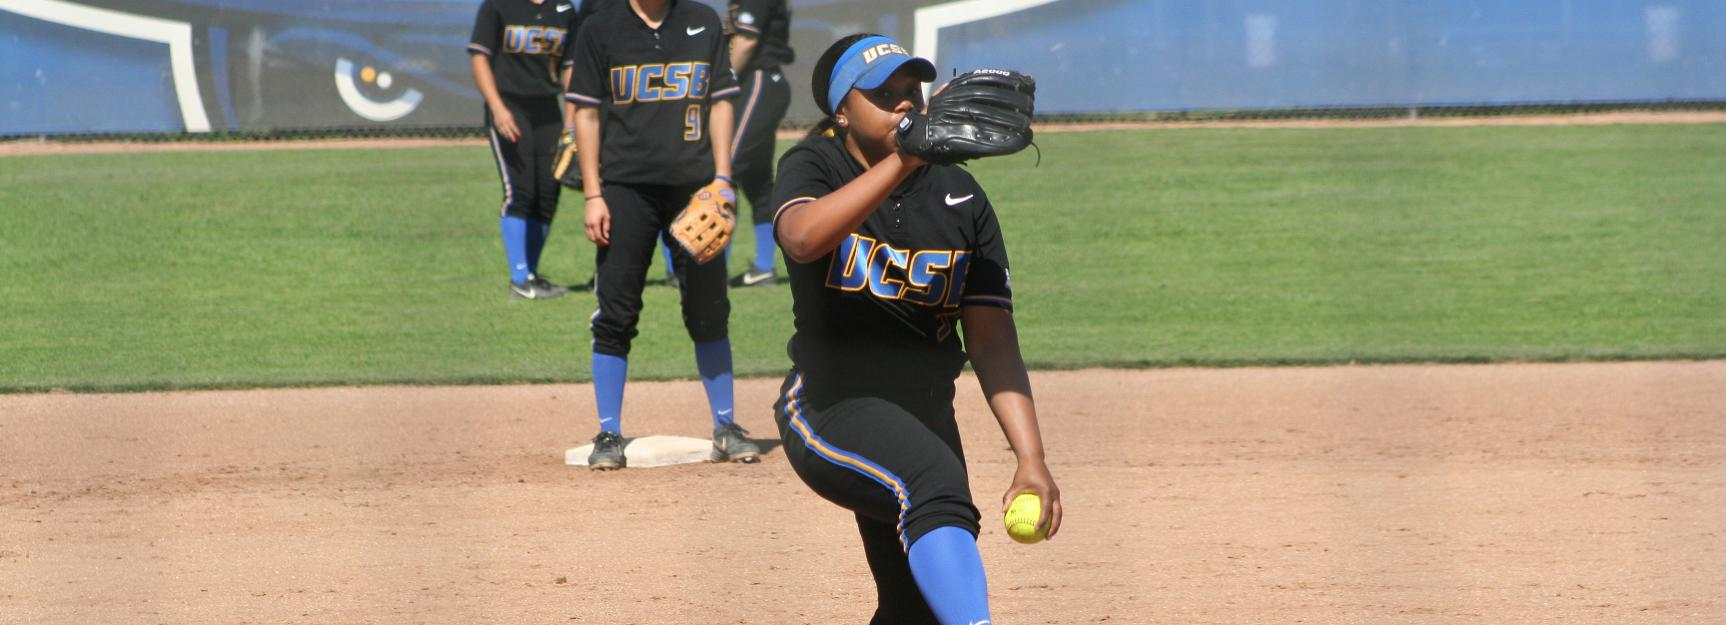 UCSB Heads to San Diego for USD Tournament II